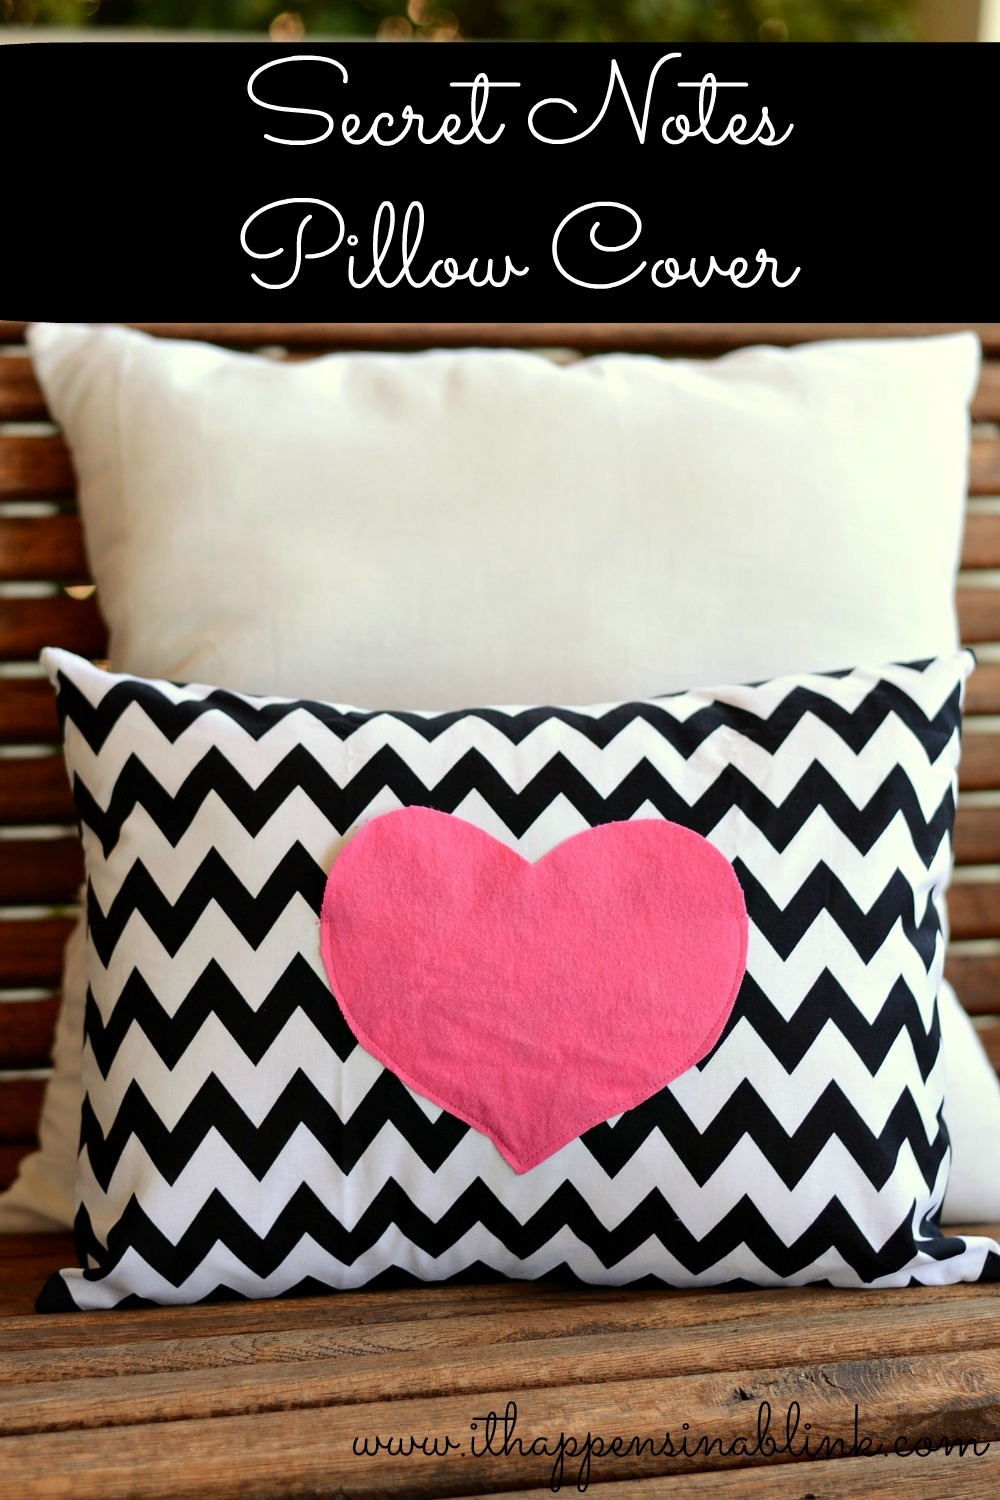 Secret Love Notes Envelope Pillow Cover Tutorial from It Happens in a Blink